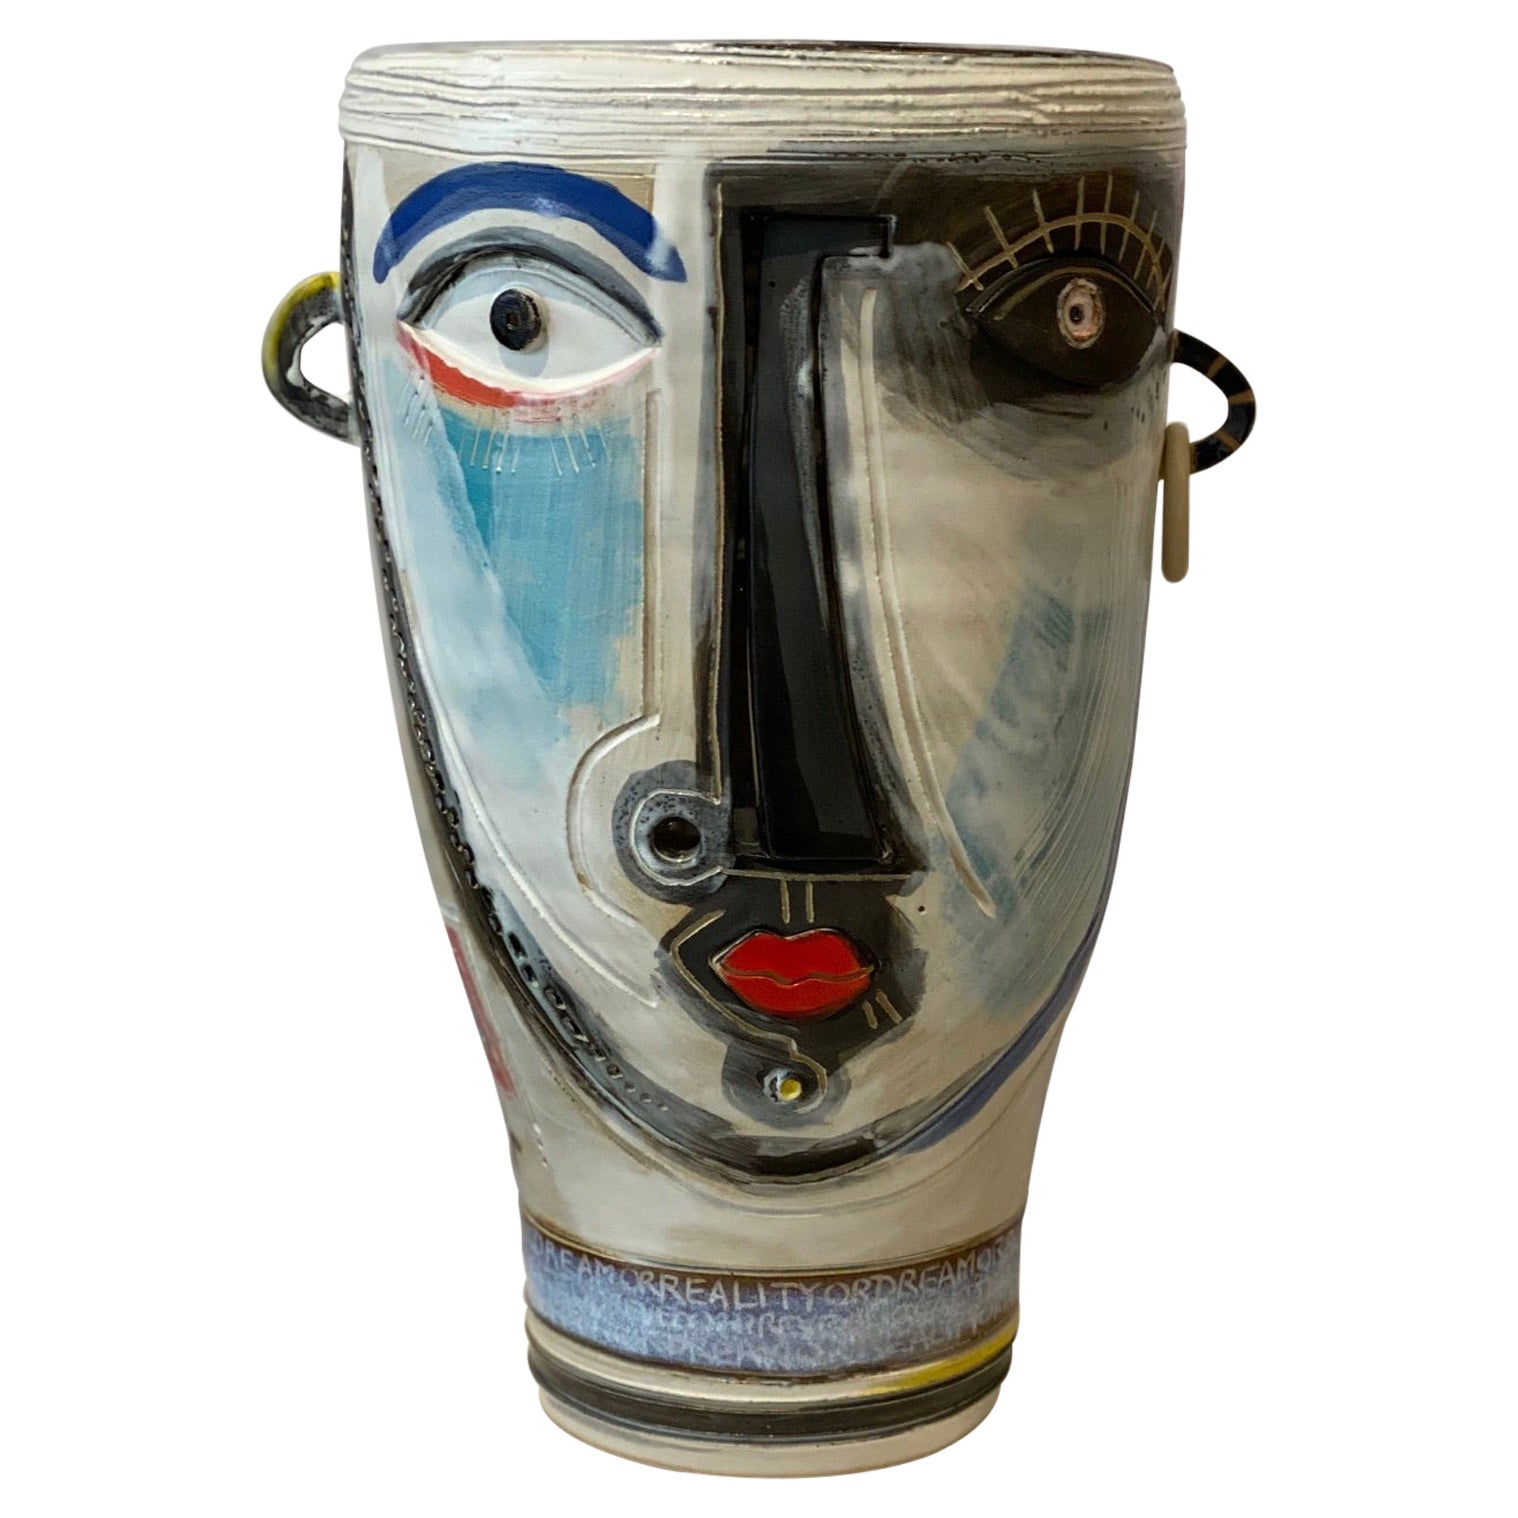 Ceramic Vase Sculpture One of a Kind Signed by Dalo